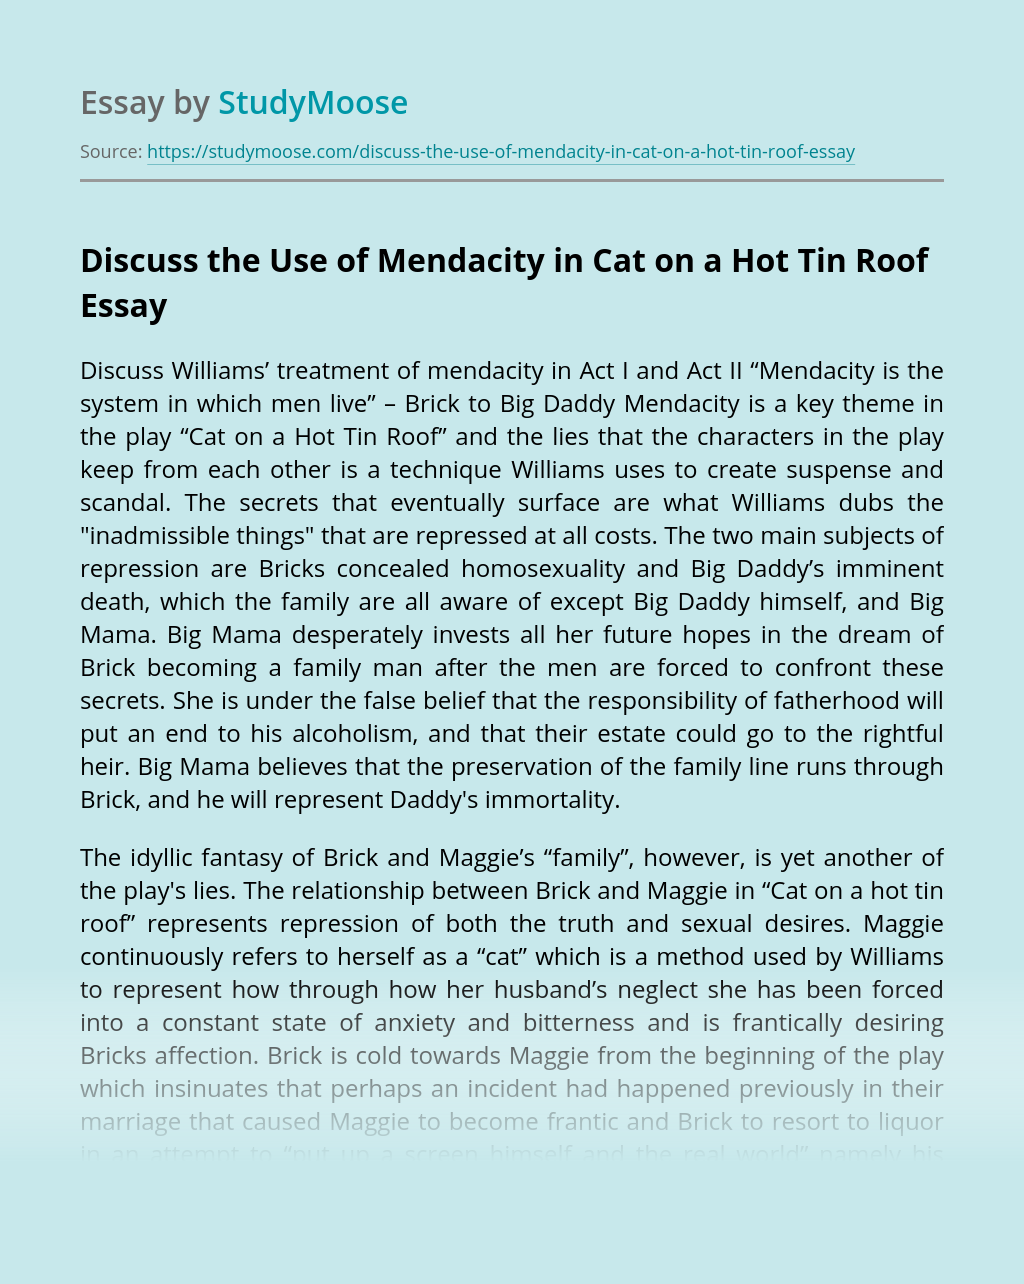 Discuss the Use of Mendacity in Cat on a Hot Tin Roof